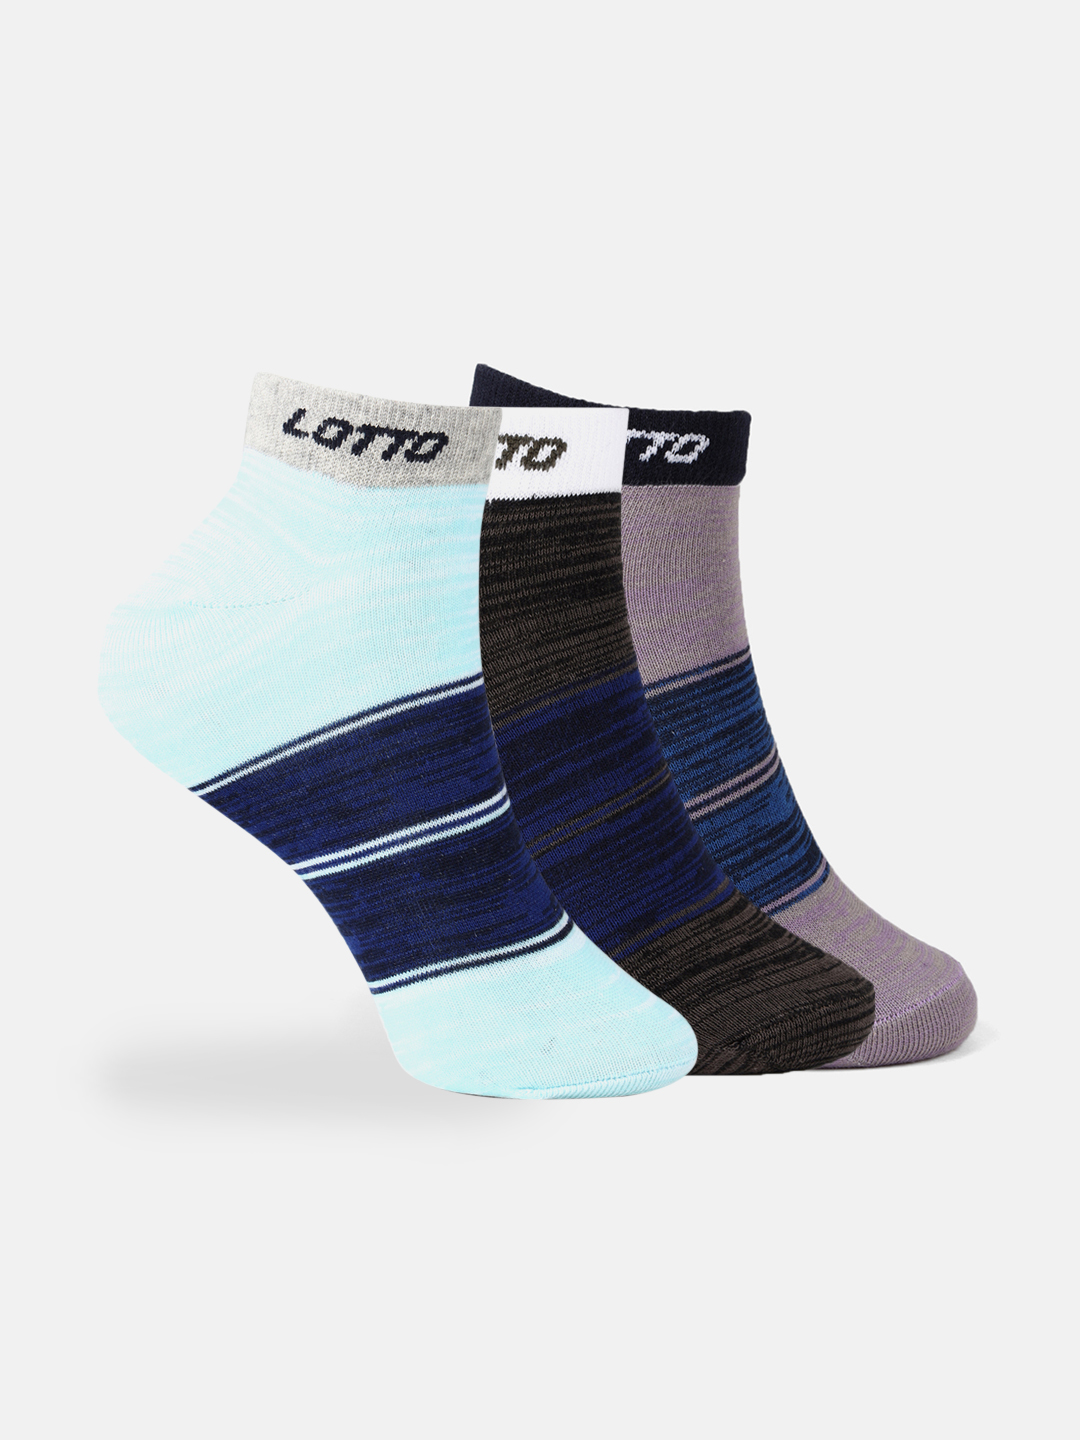 Lotto | Lotto Women's Wms Anklet Shade Trio Violet/Black/Blue Socks